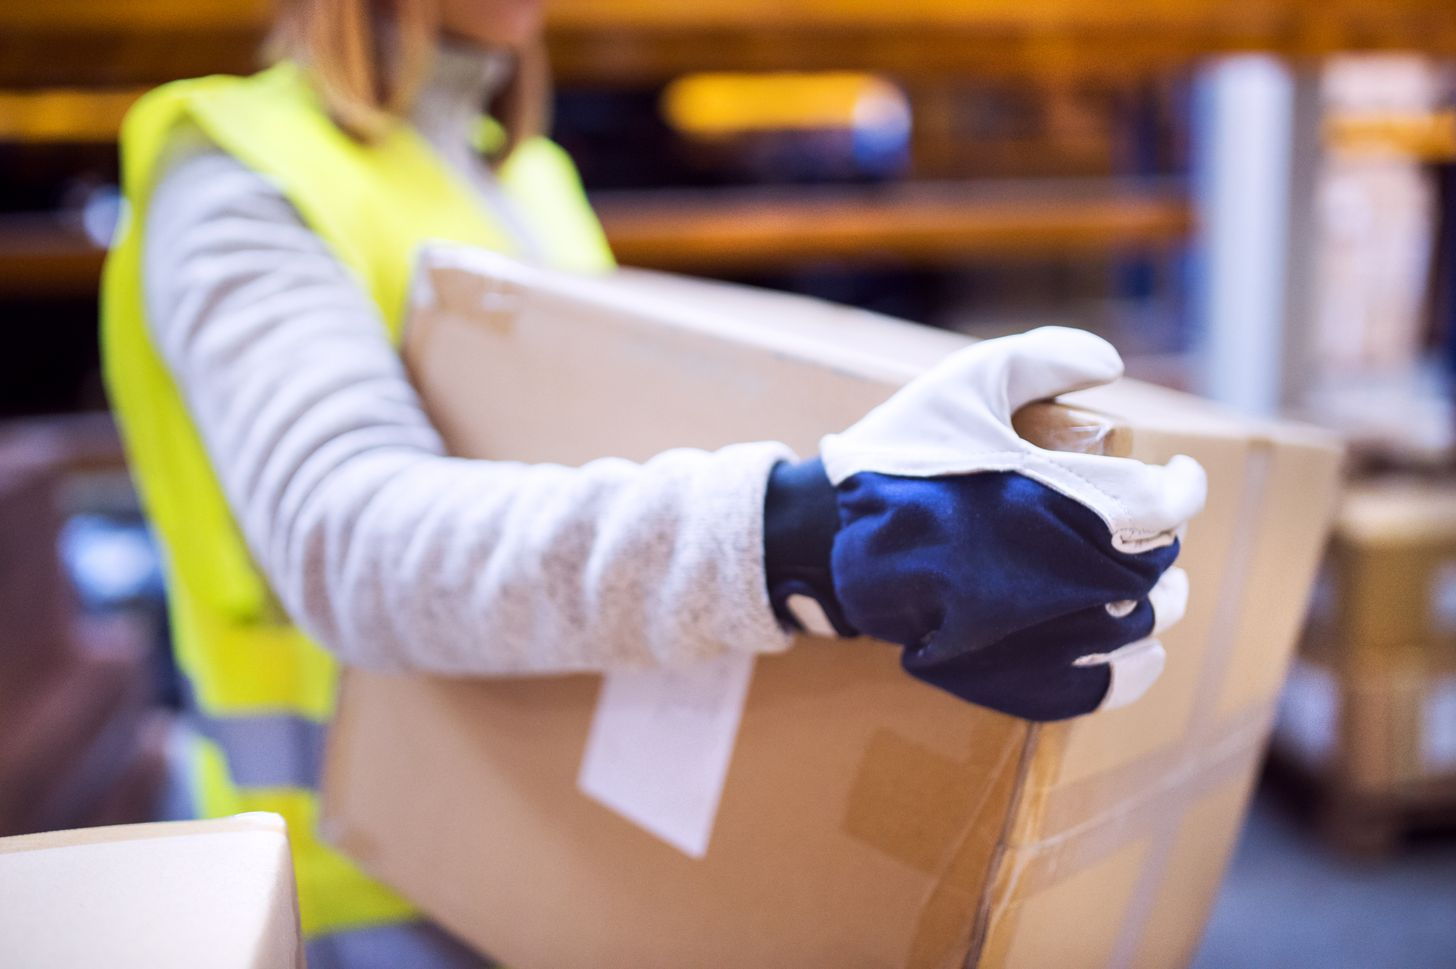 box handling gloves article.jpg